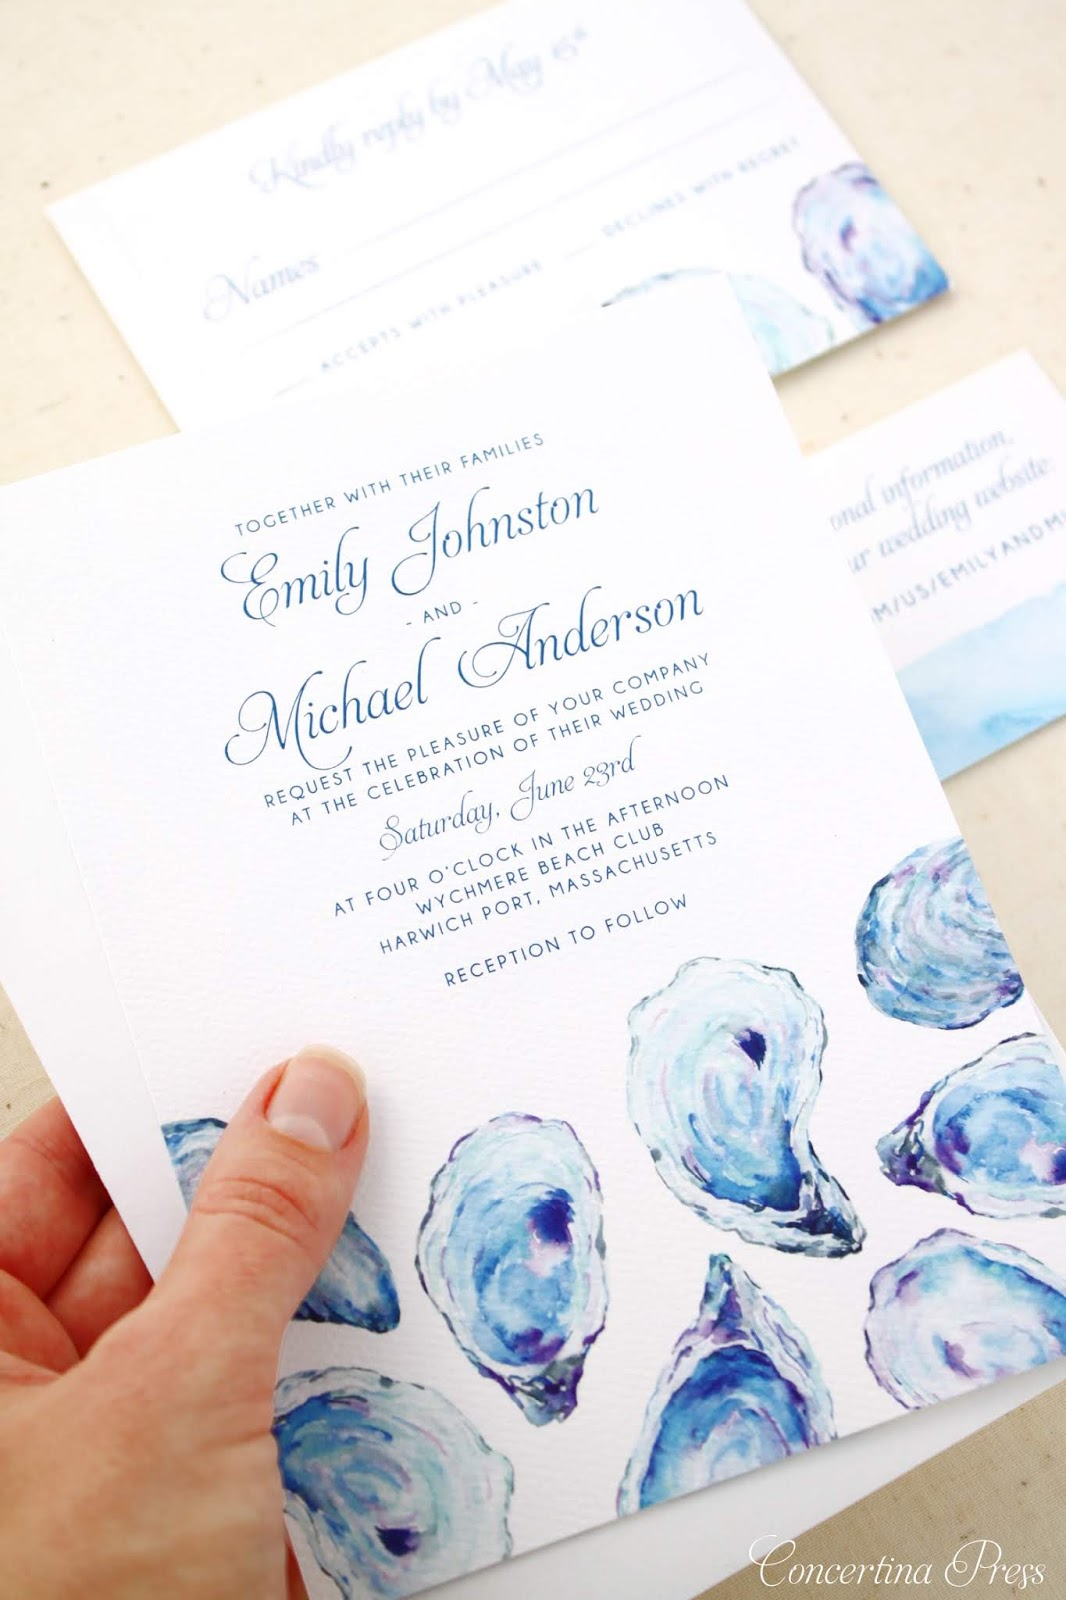 Oyster Watercolor Wedding invitations for a Wychmere Beach Club Cape Cod Wedding from Concertina Press